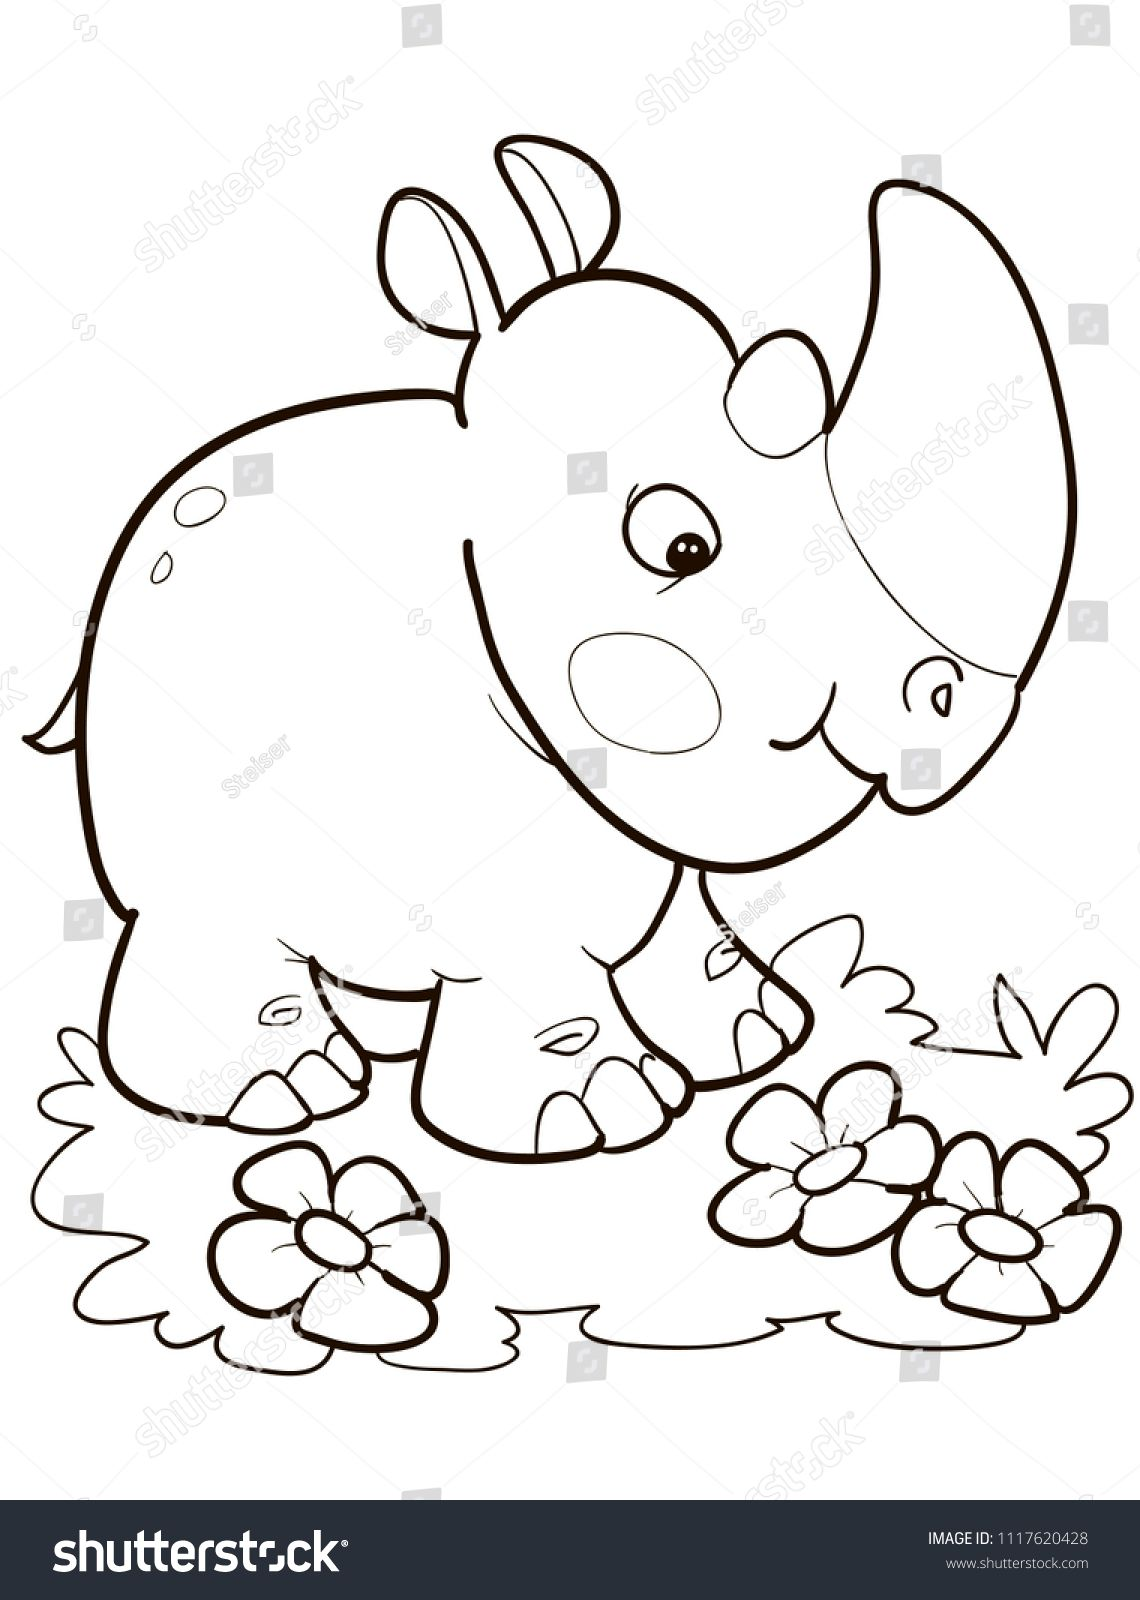 Coloring Page Outline Of Cartoon Cute Rhino Vector Illustration Summer Coloring Book For Kids Ad Spons Cute Coloring Pages Coloring Pages Animal Outline